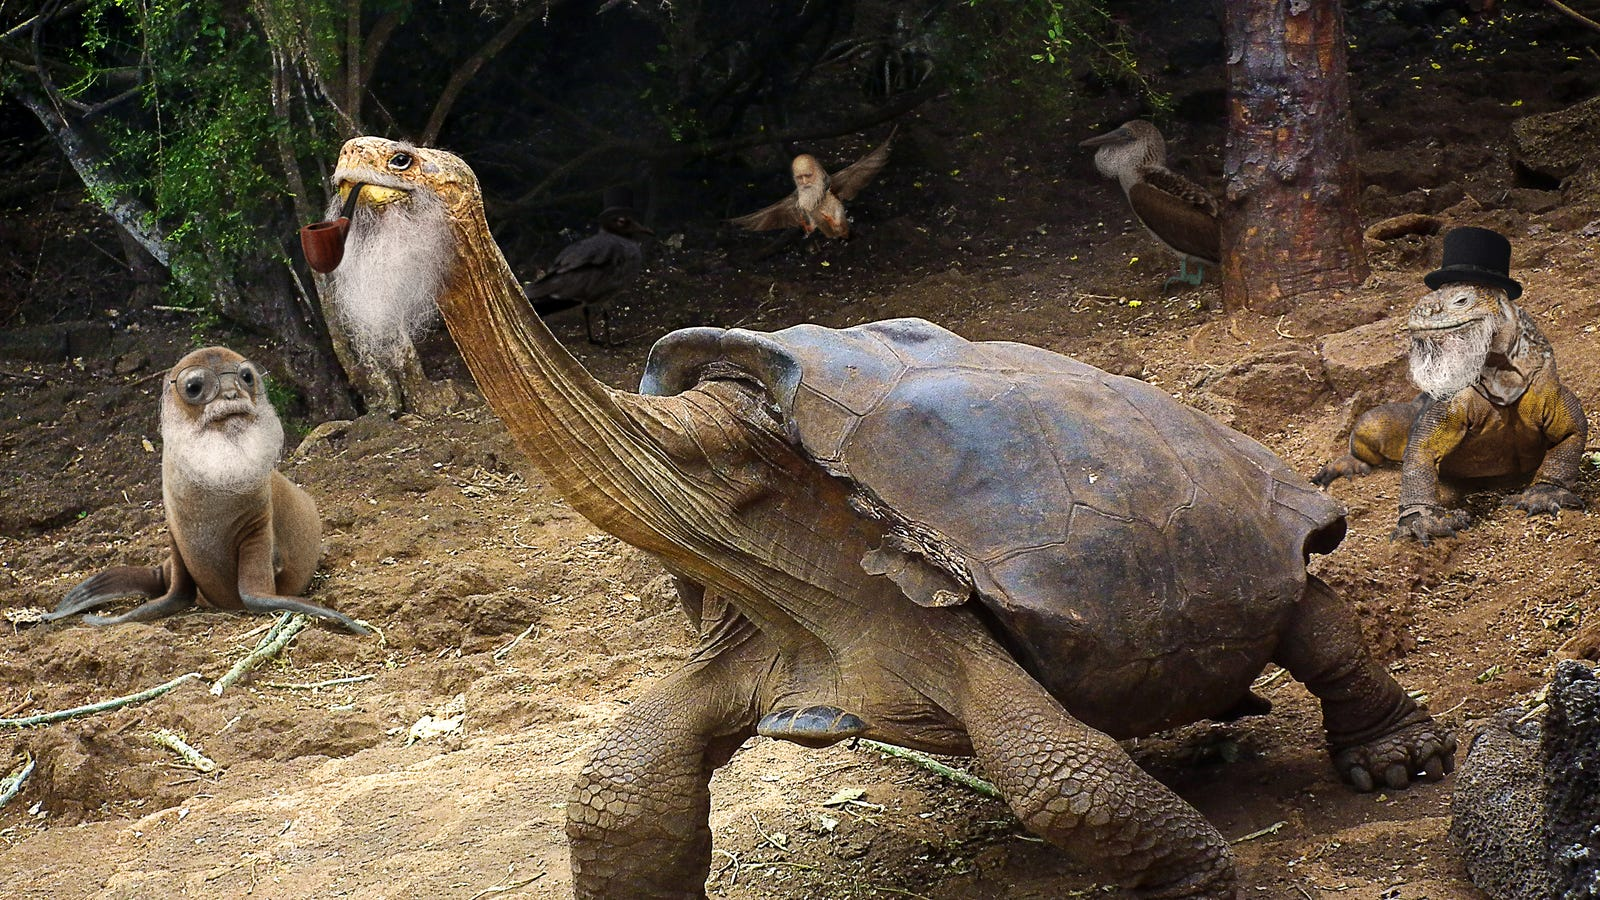 Ecologists Discover 400 Species Of Charles Darwin Living In Galápagos Islands